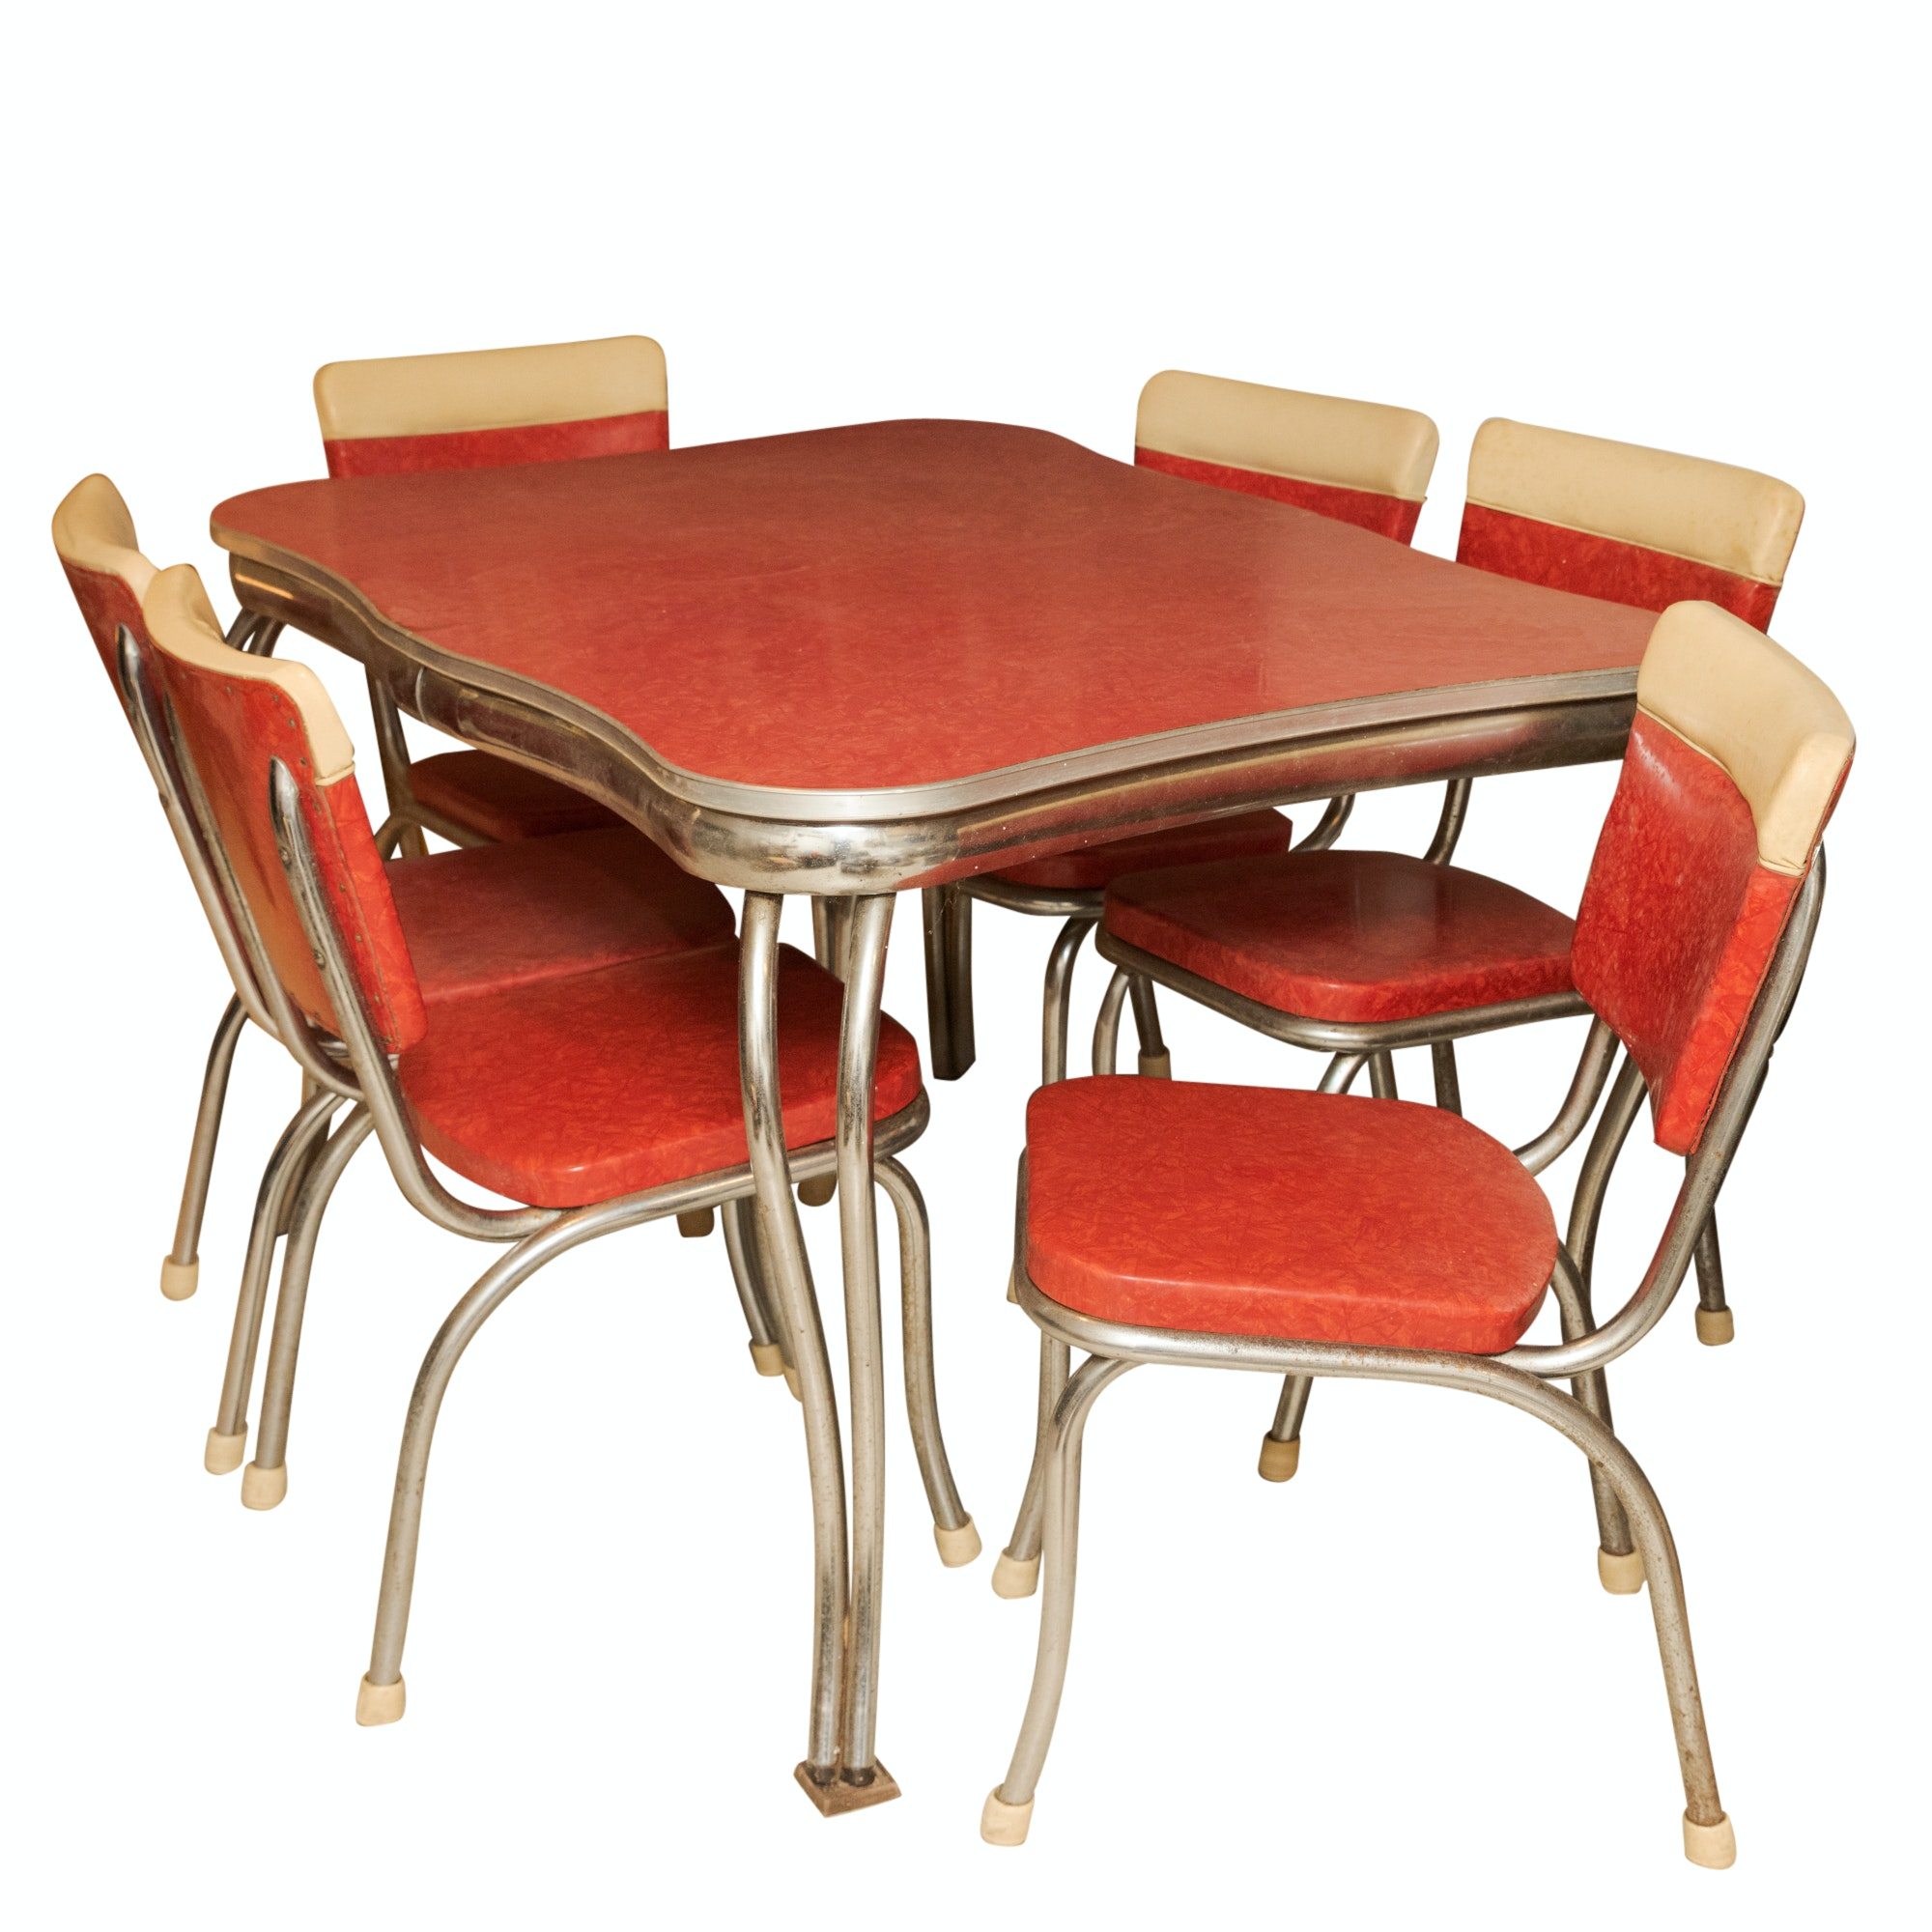 Mid Century Modern Bent Chrome Dinette Set by Kuehne Khrome, Mid-20th Century